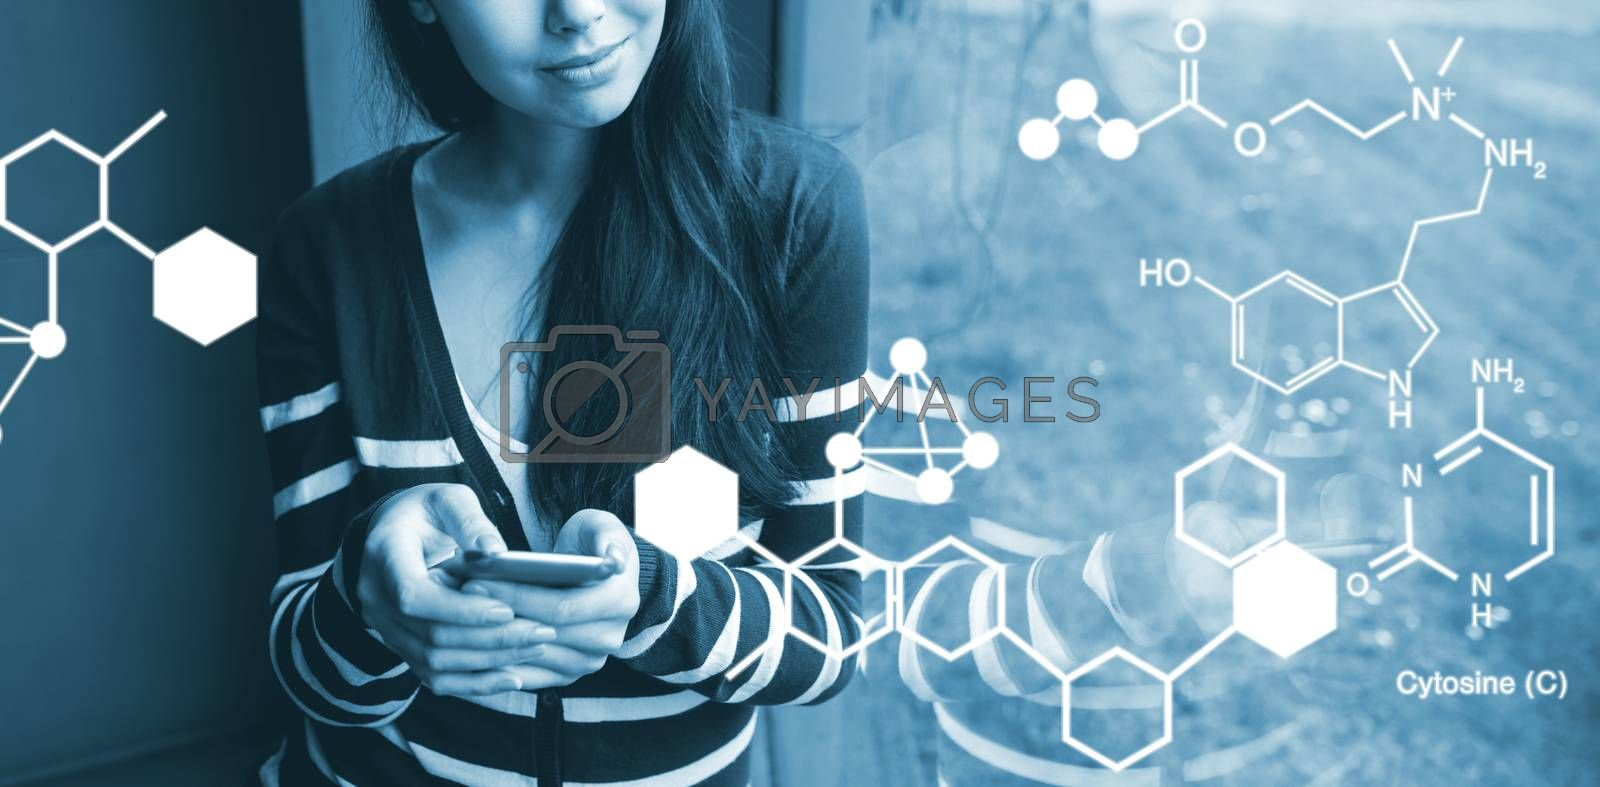 Composite image of digitally generated image of chemical structure by Wavebreakmedia